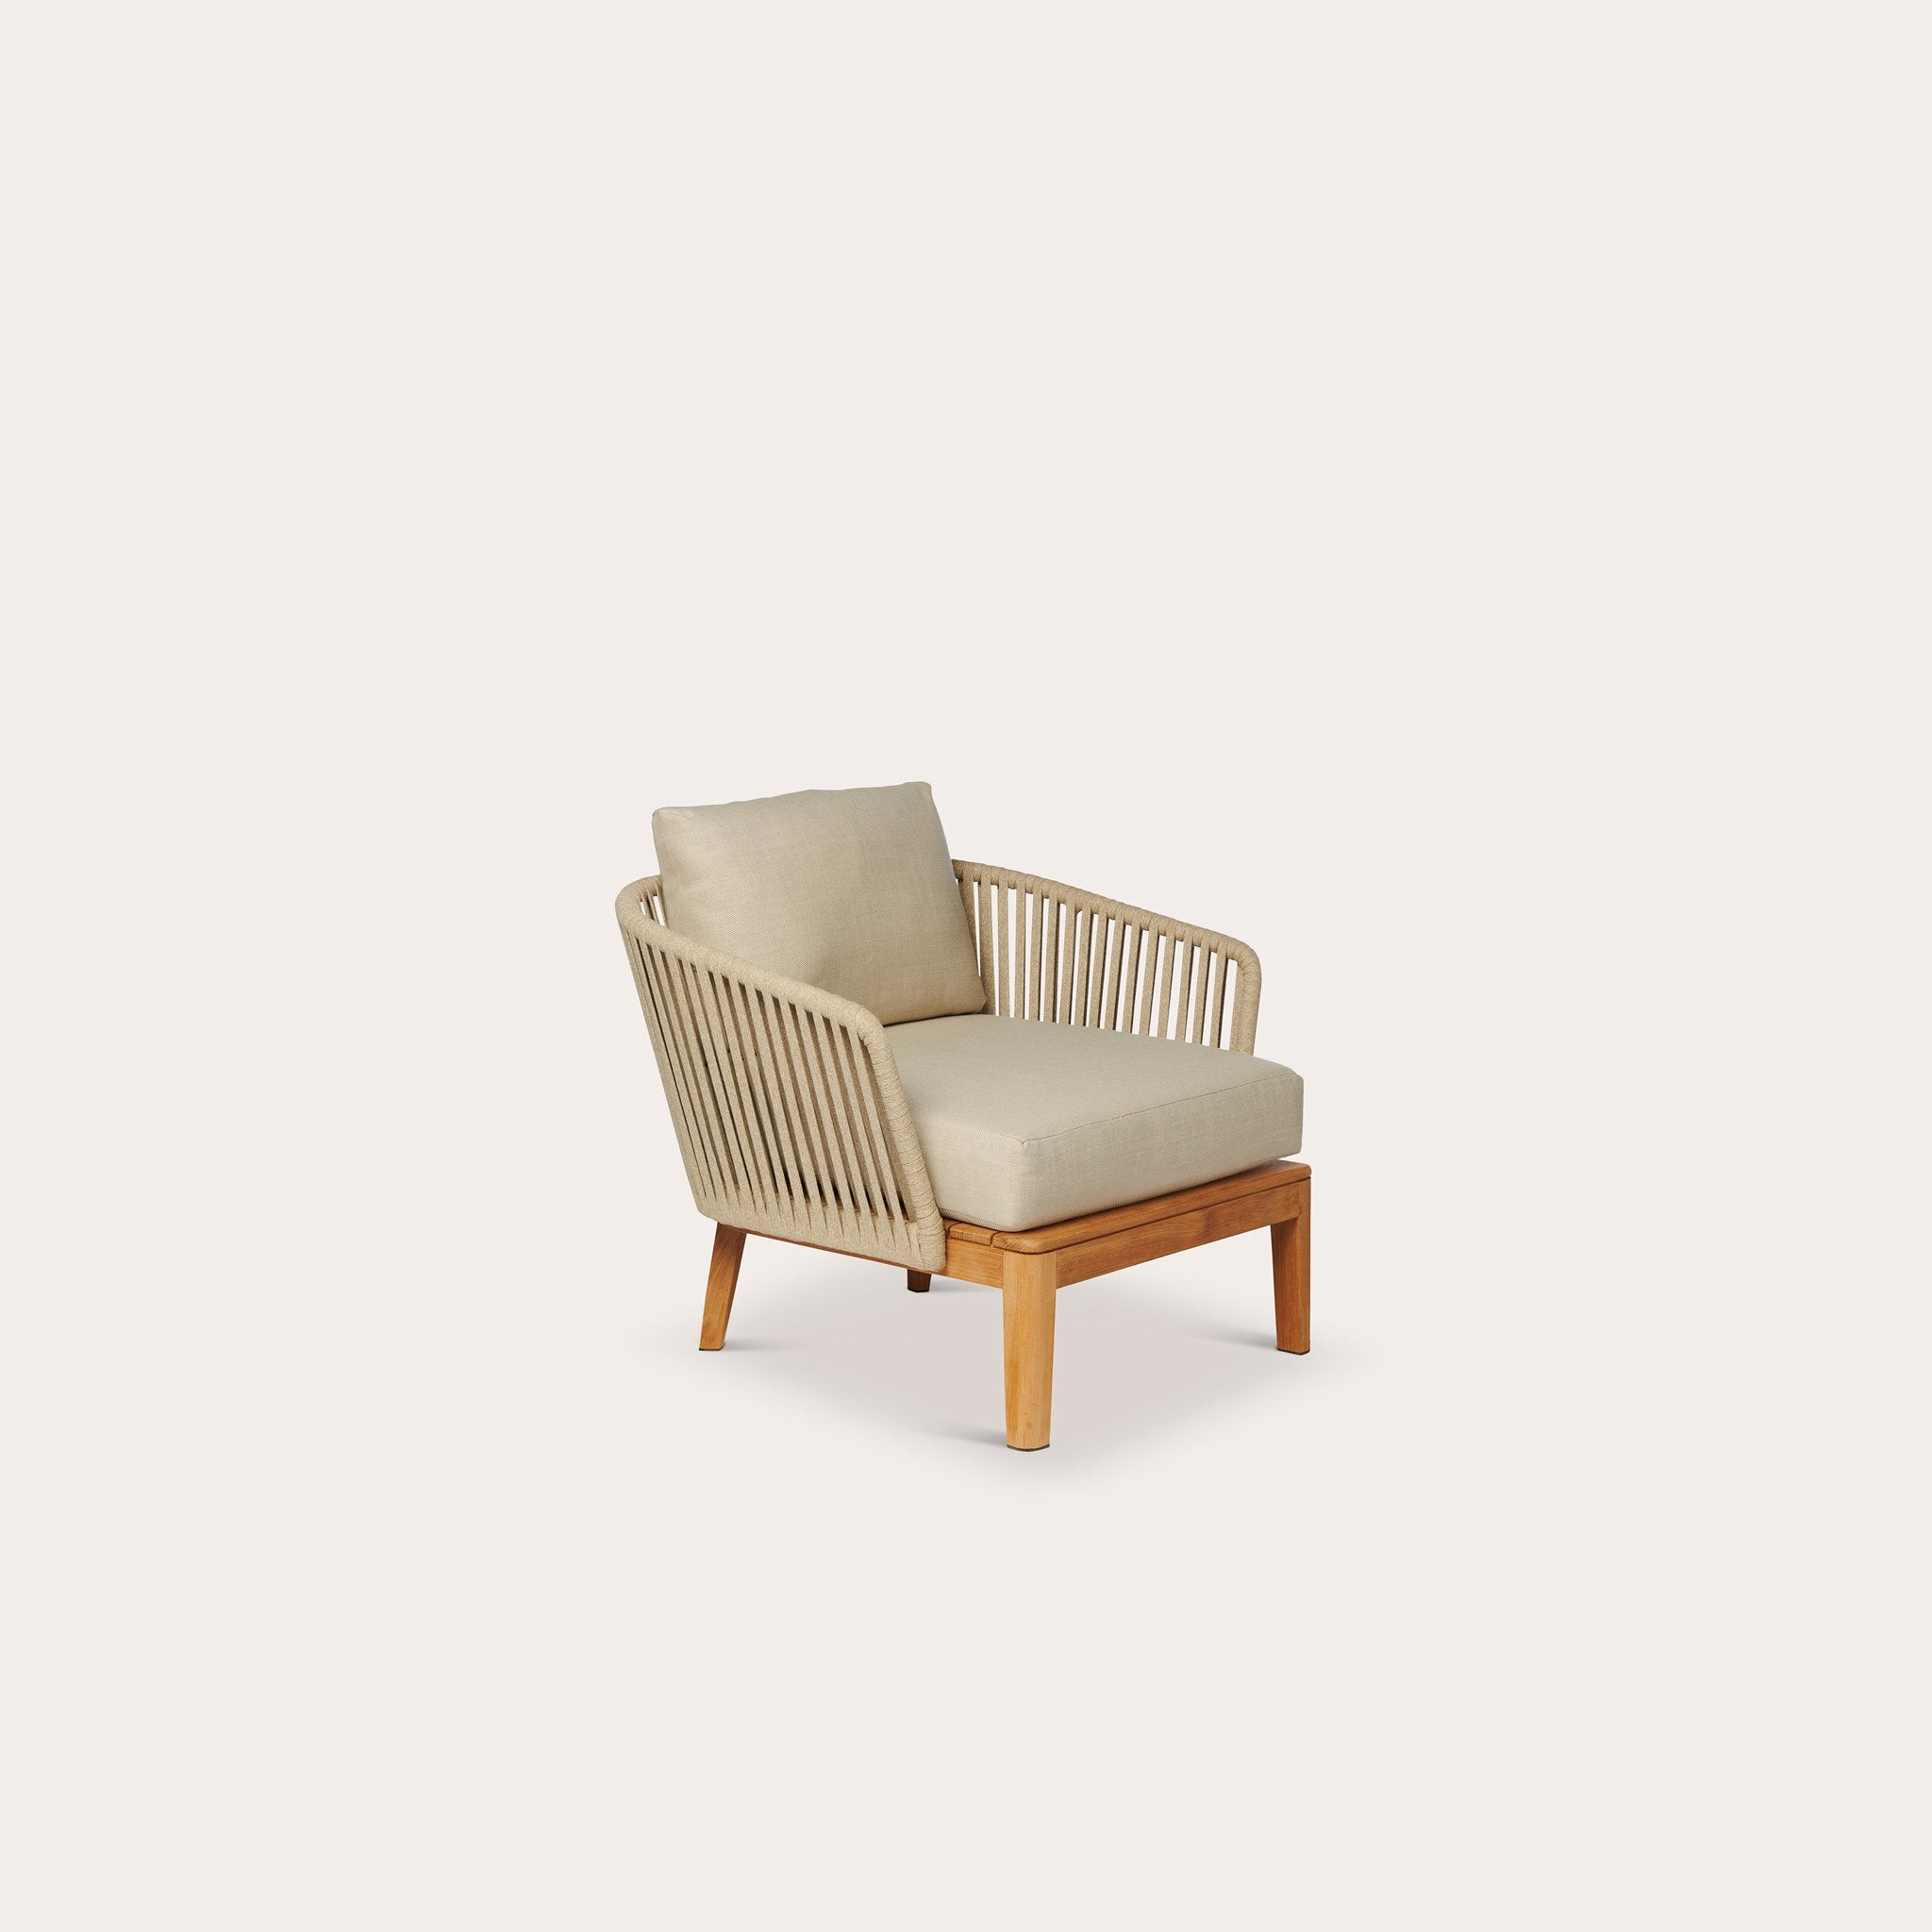 MOOD Club Chair Outdoor Studio Segers Designer Furniture Sku: 007-200-11886